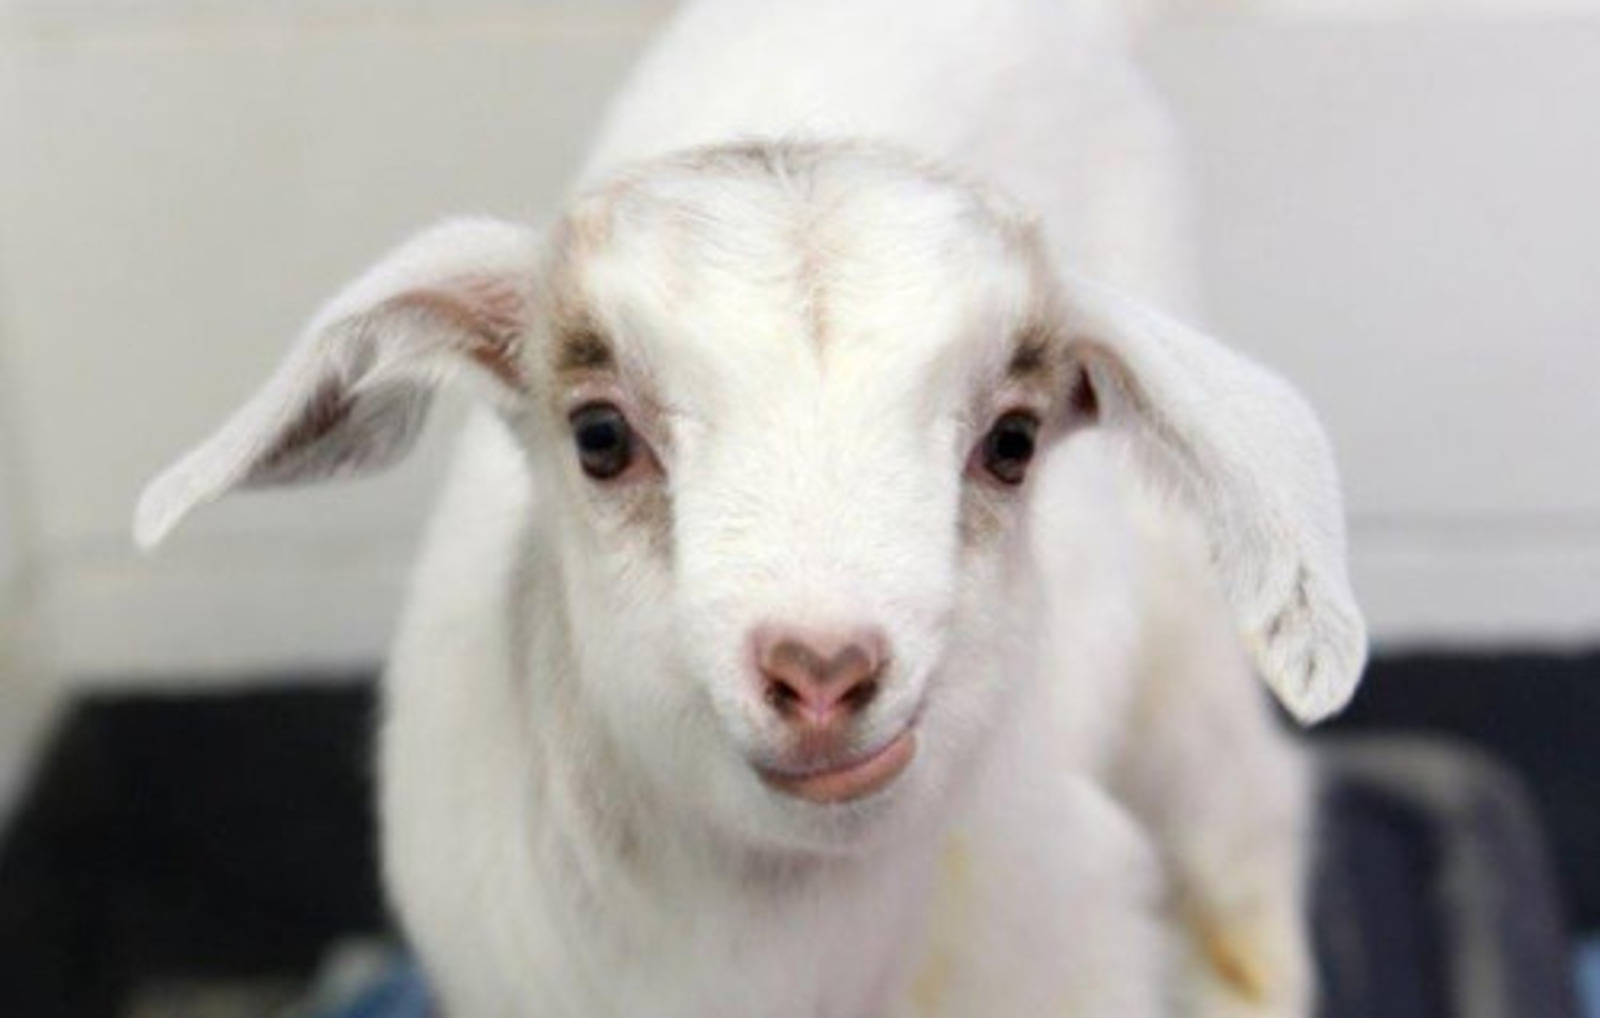 From Frat House Mascot to Thriving at a Sanctuary: The Journey of Maxie the Goat